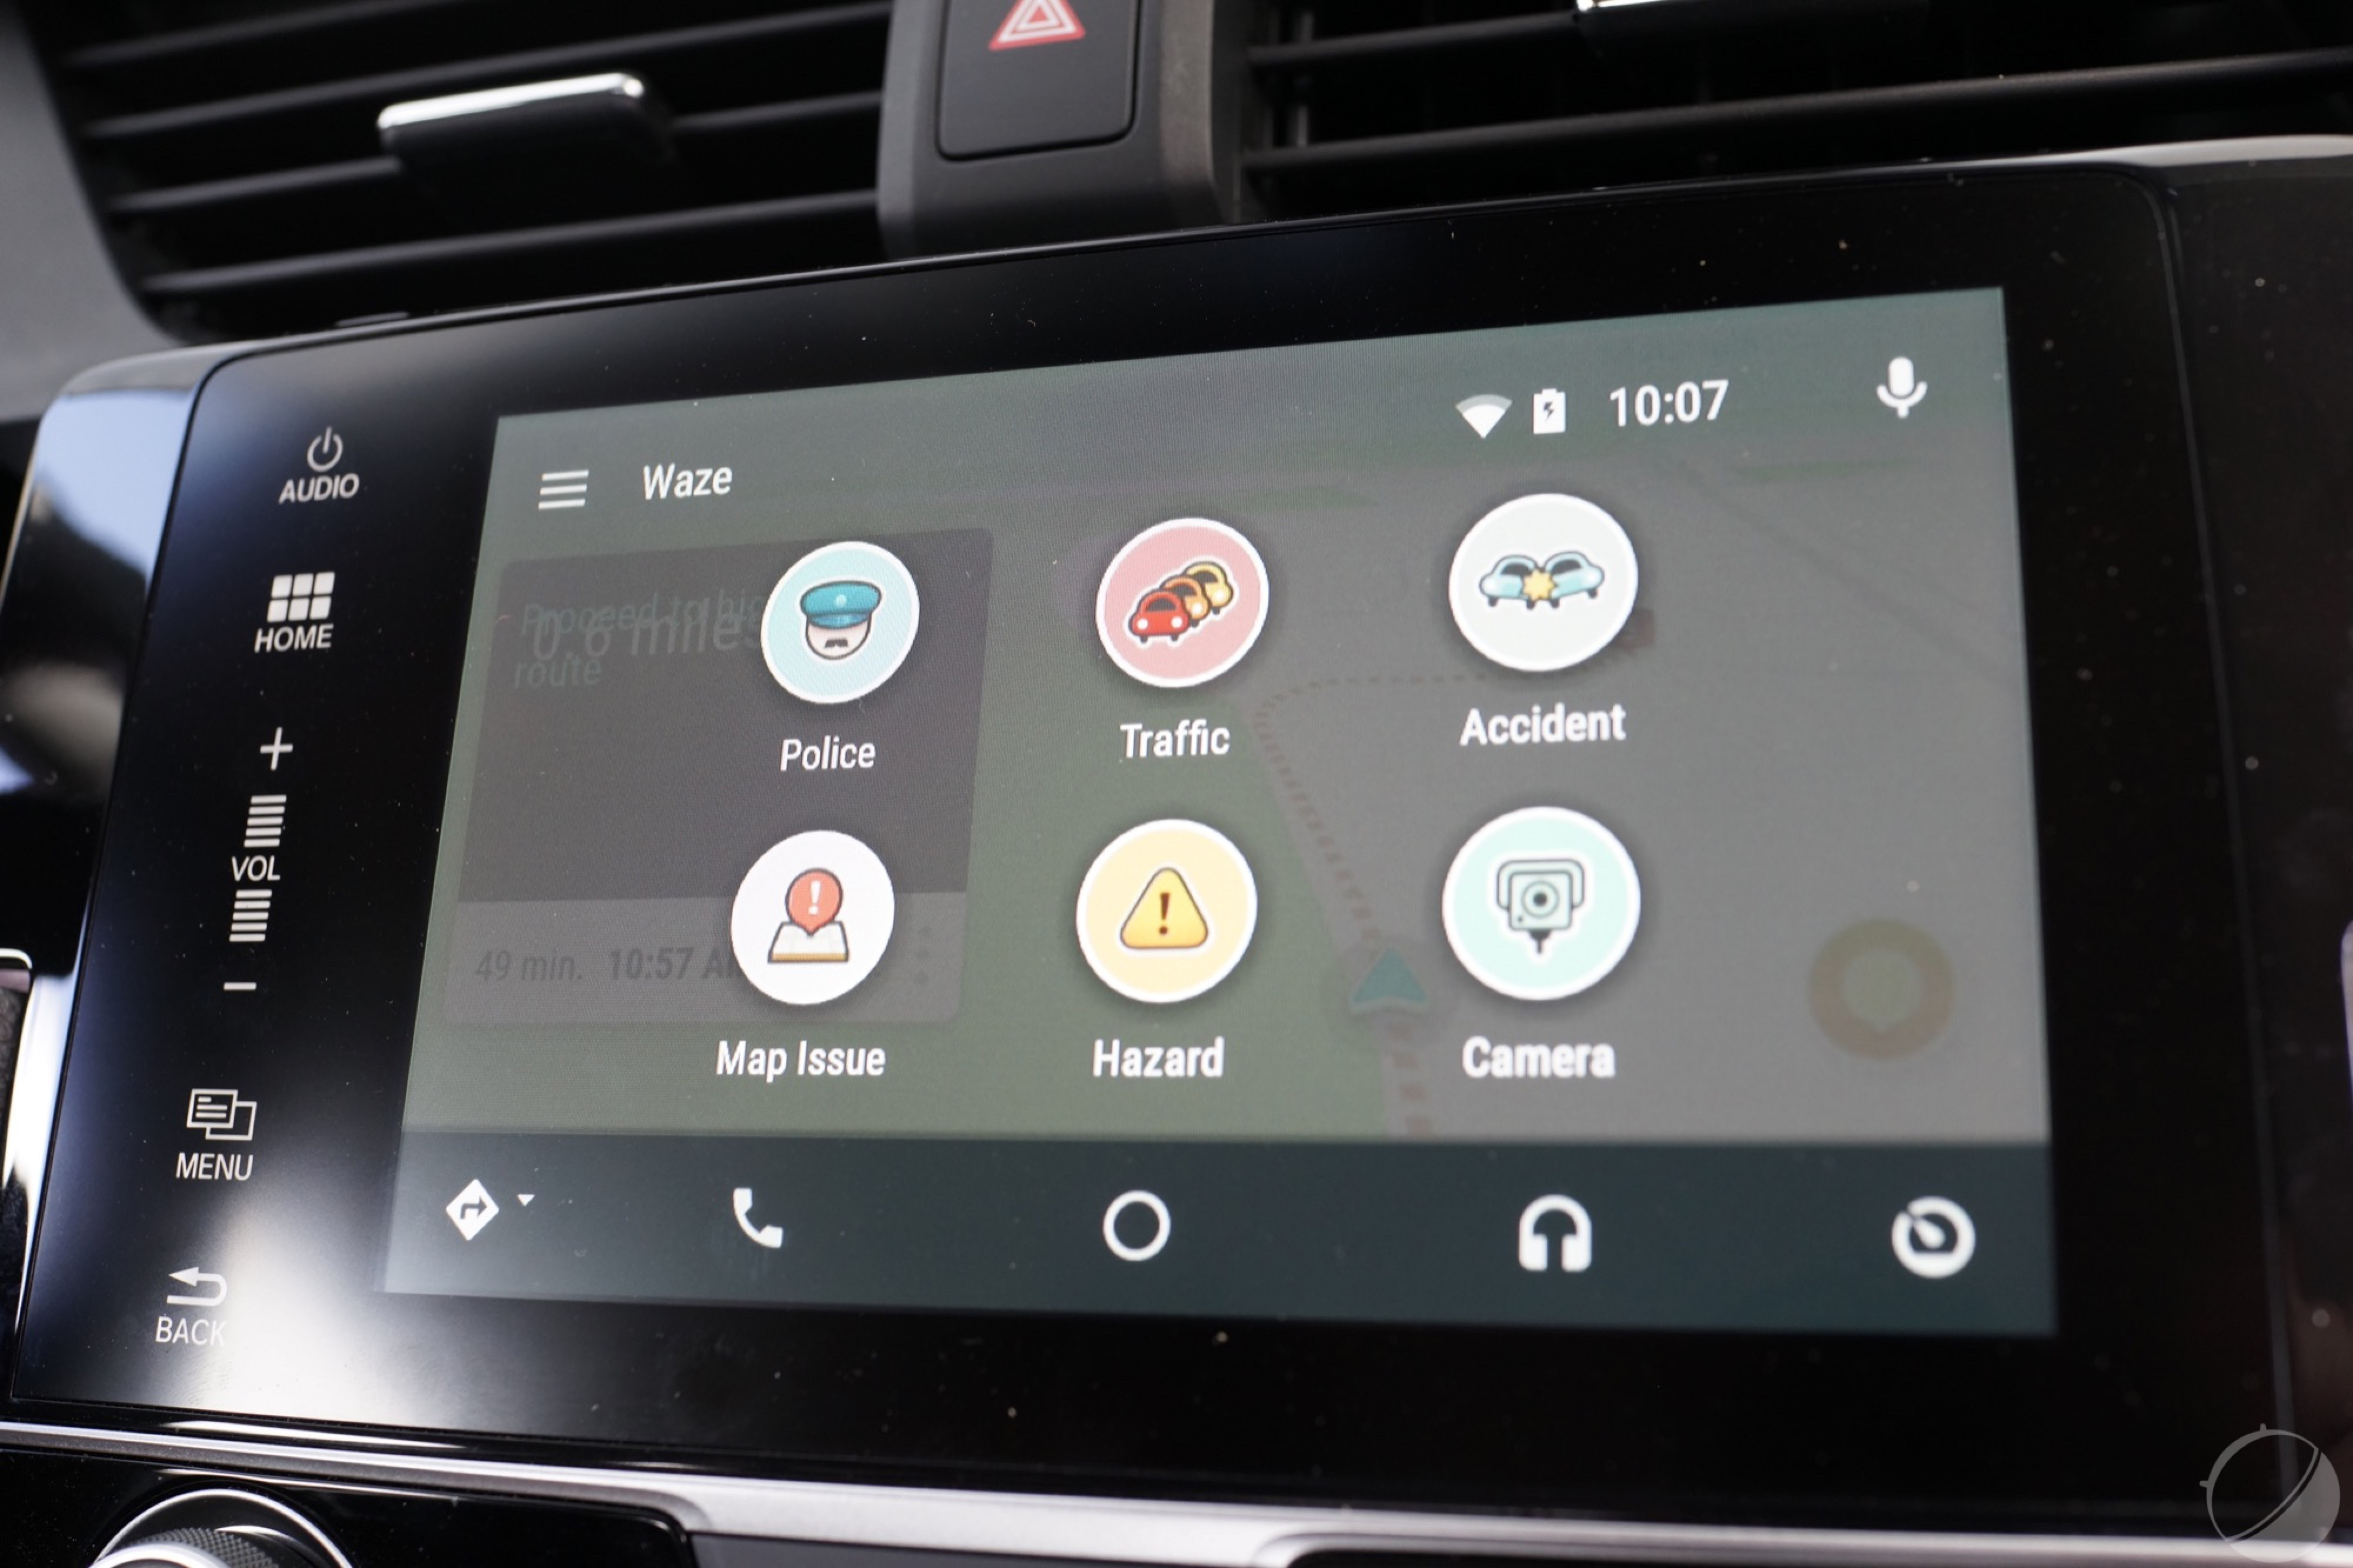 waze sur android auto les premi res images de l 39 interface frandroid. Black Bedroom Furniture Sets. Home Design Ideas